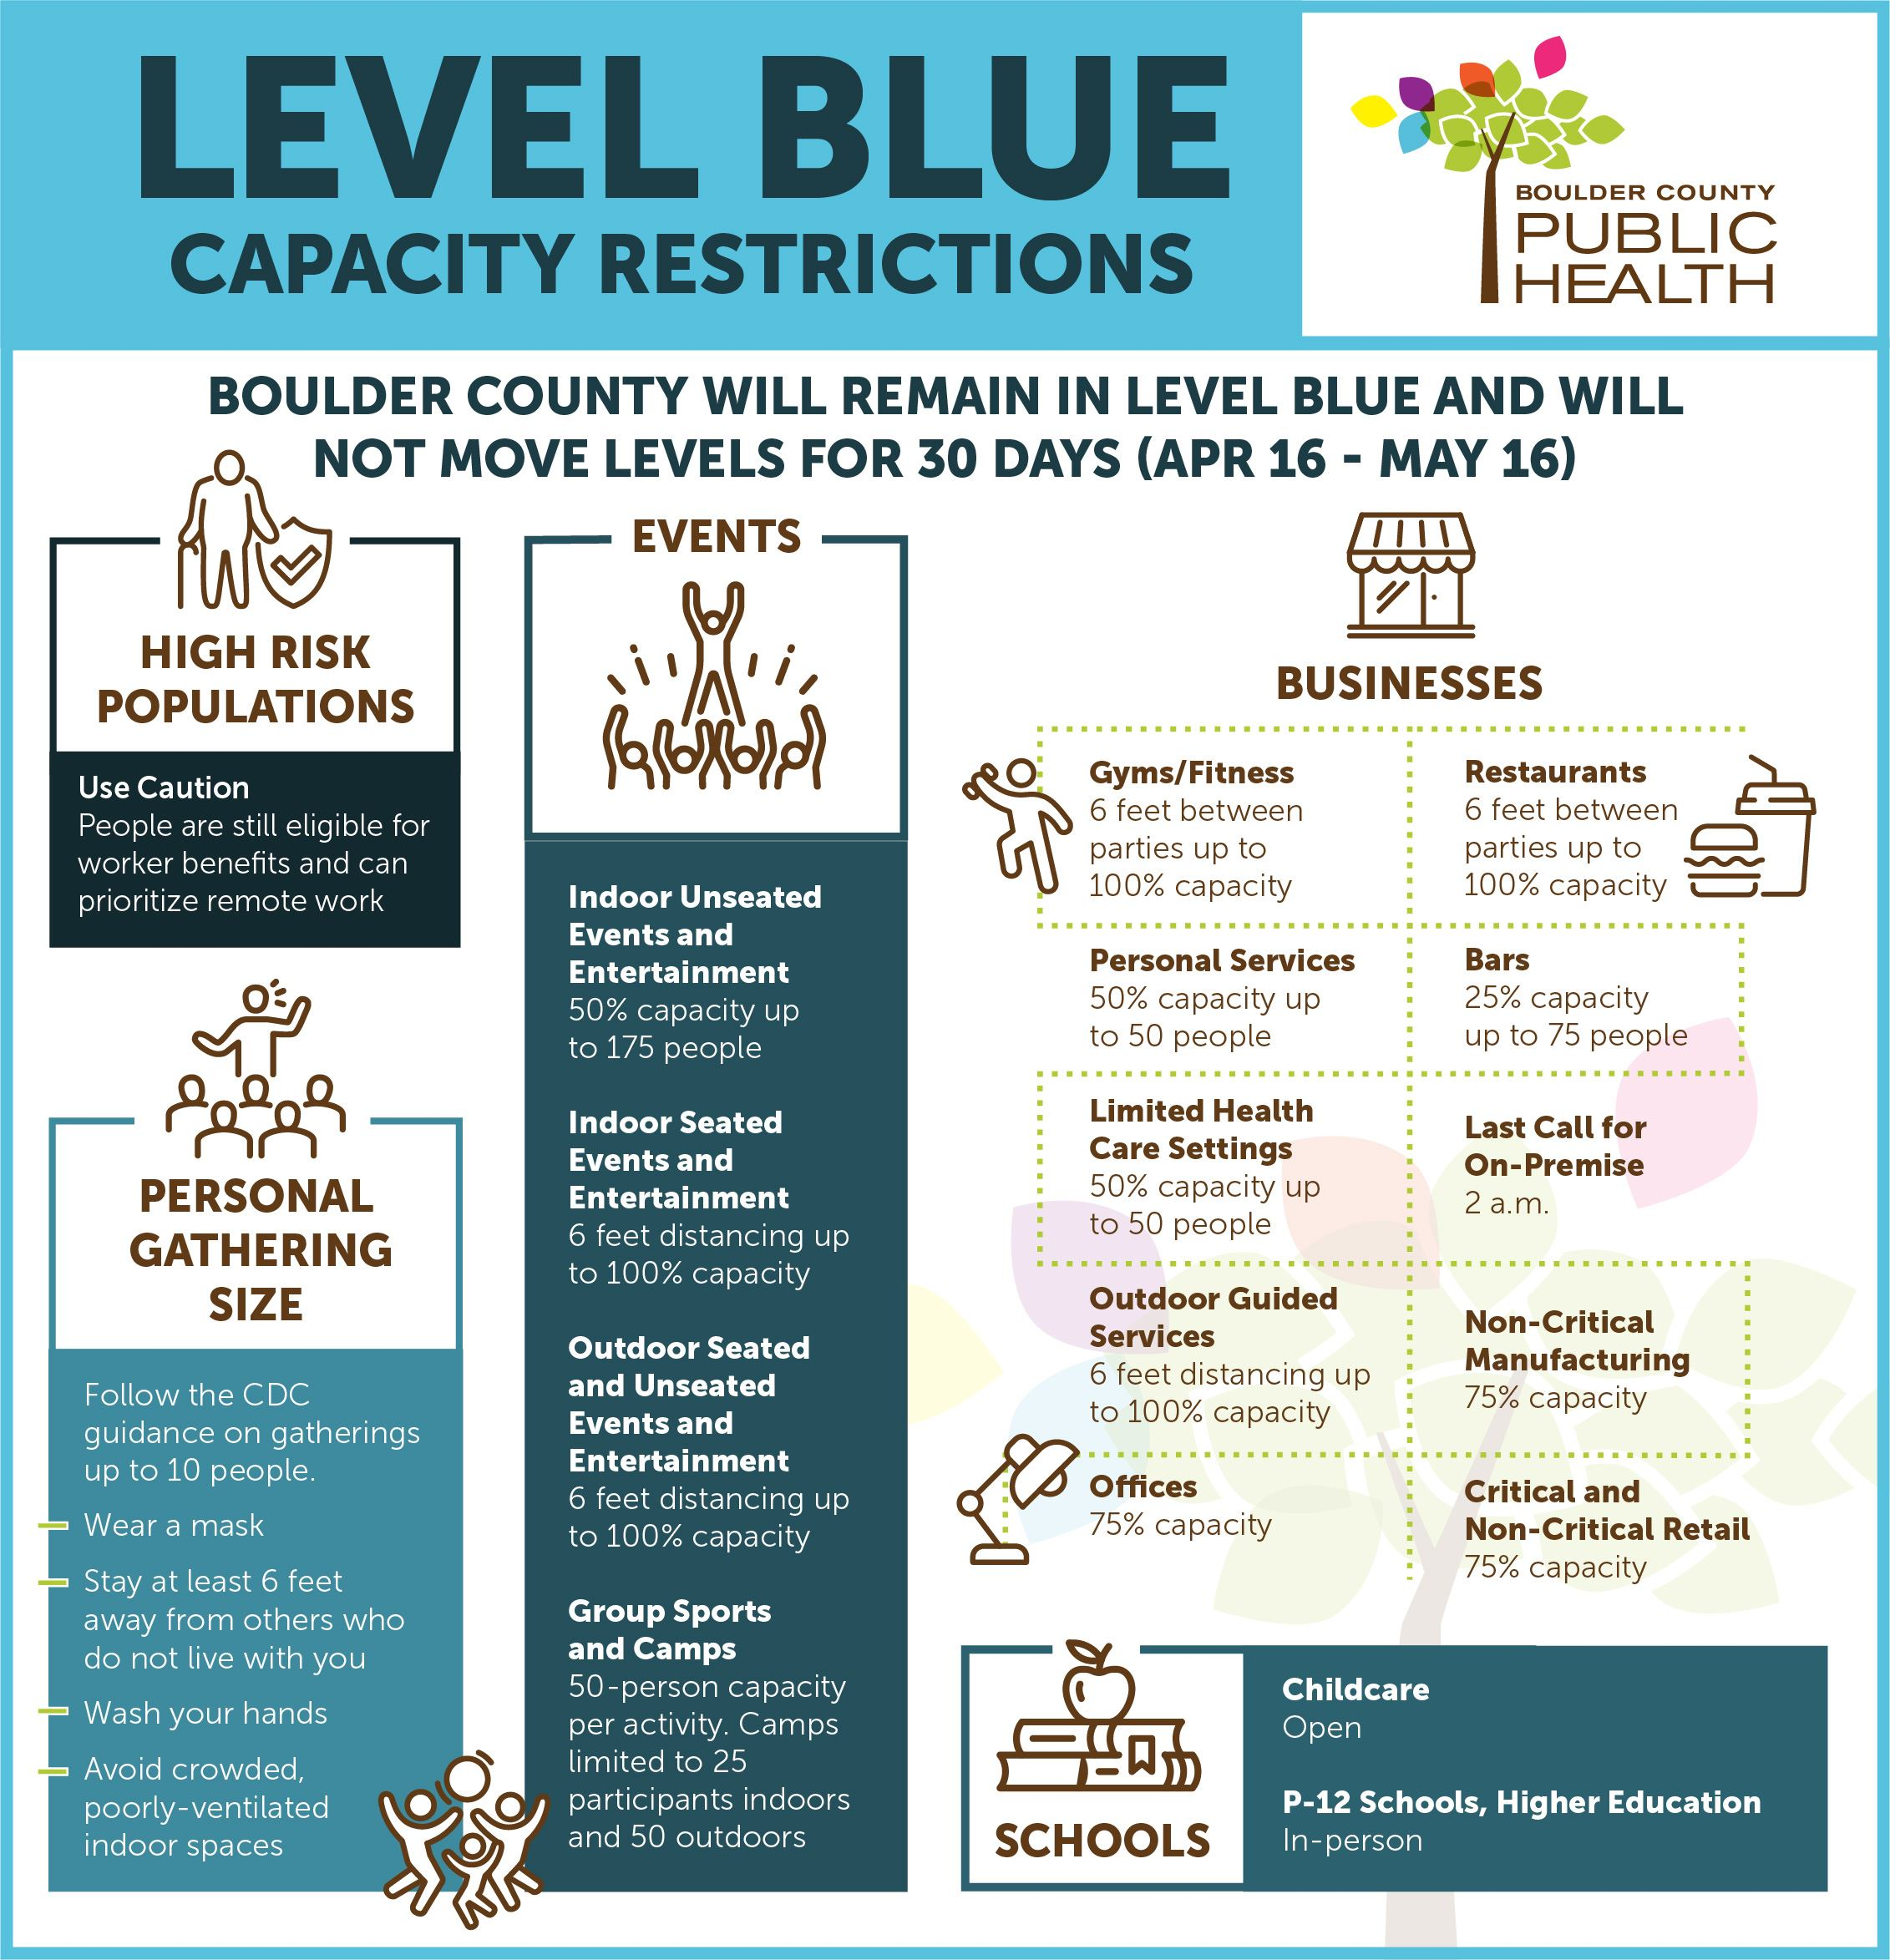 Level Blue - Boulder County Public Health Opens in new window